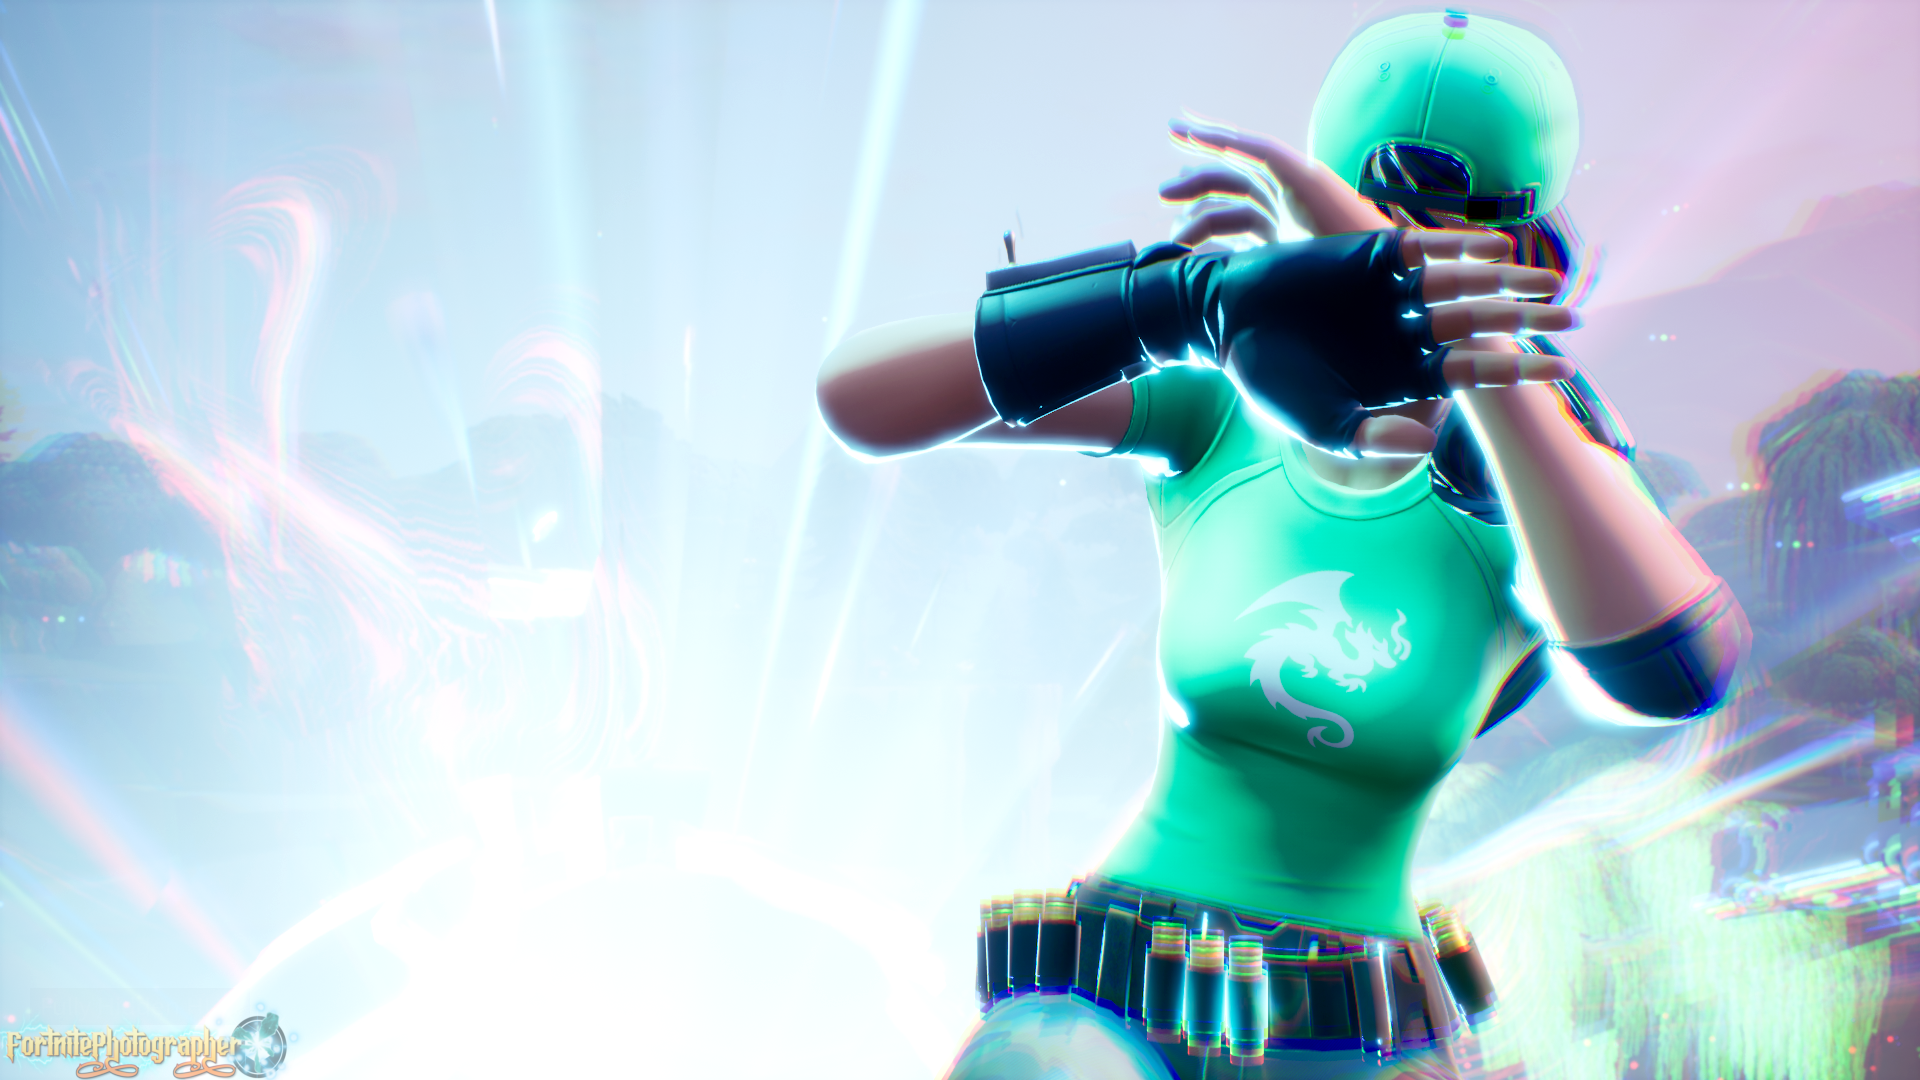 Embrace Every Moment Banner Trooper Shots Thanks For All The Support And Sharing Banner Trooper Set 3 3 4 Fn Photographer Fortnite Photography